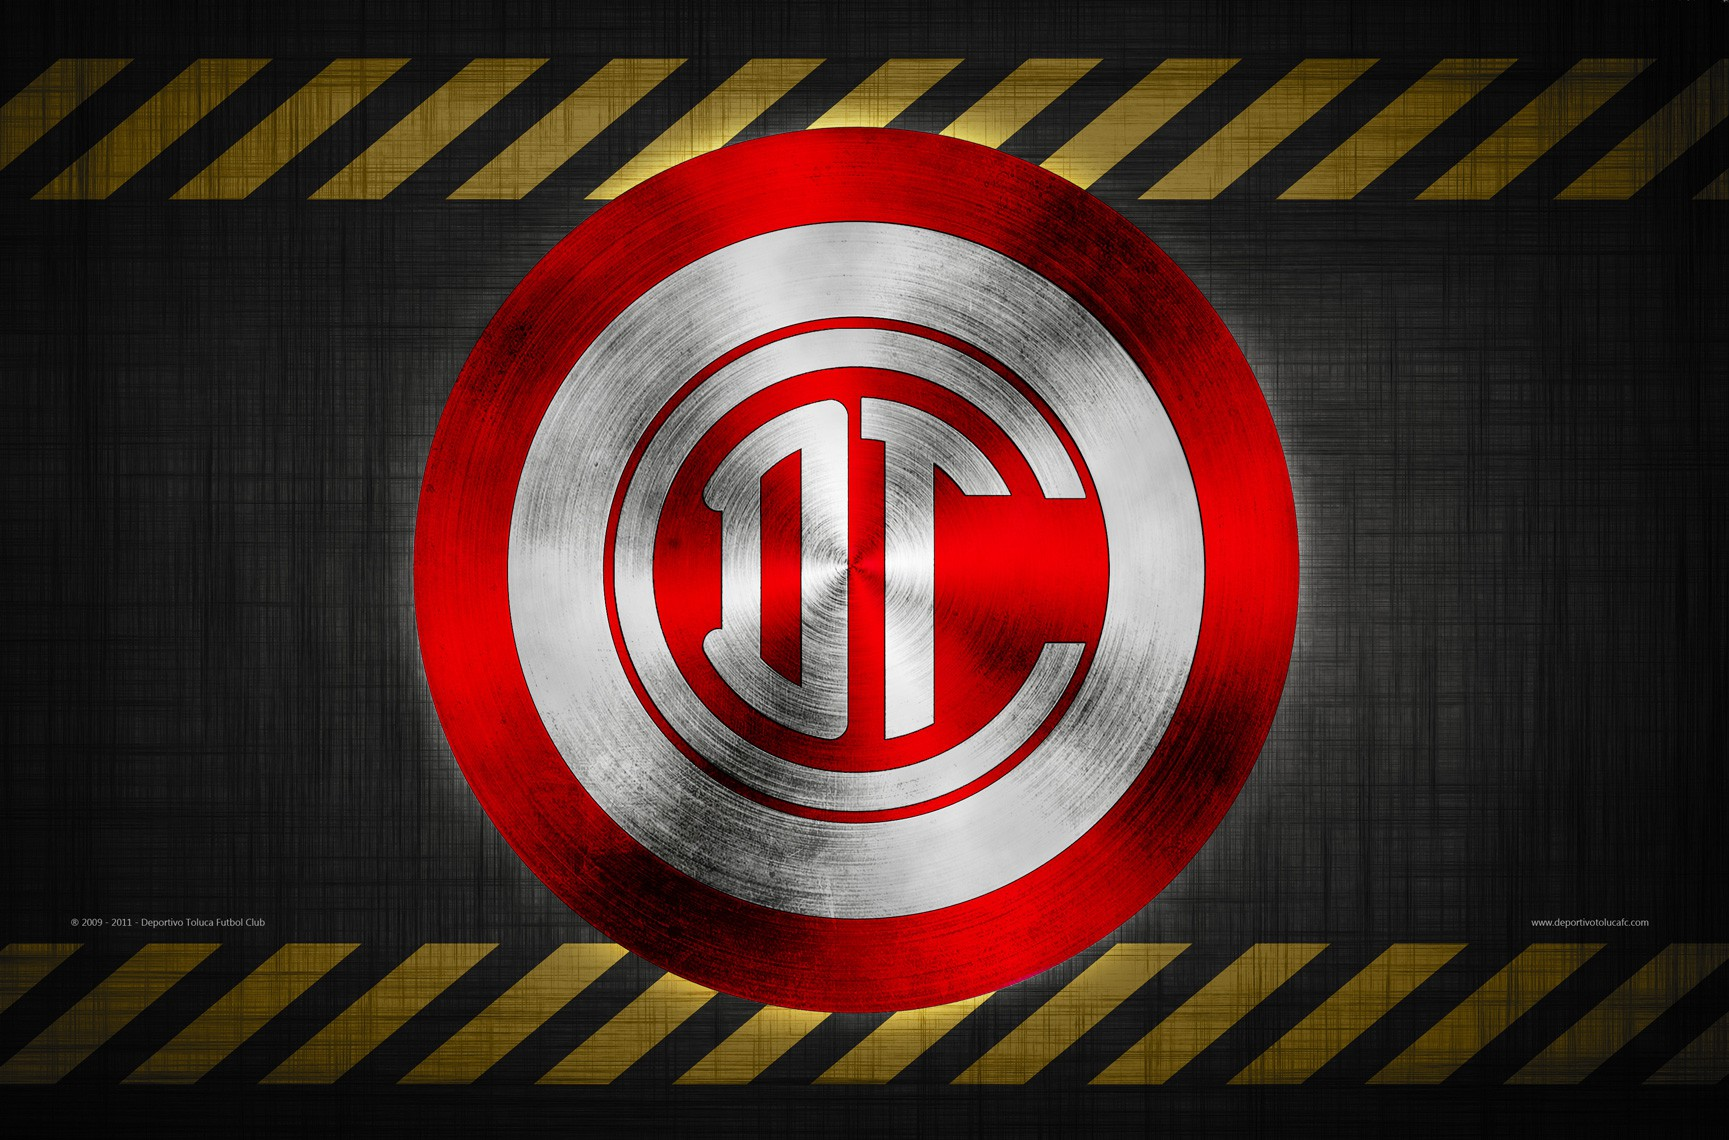 club toluca wallpaper - photo #7